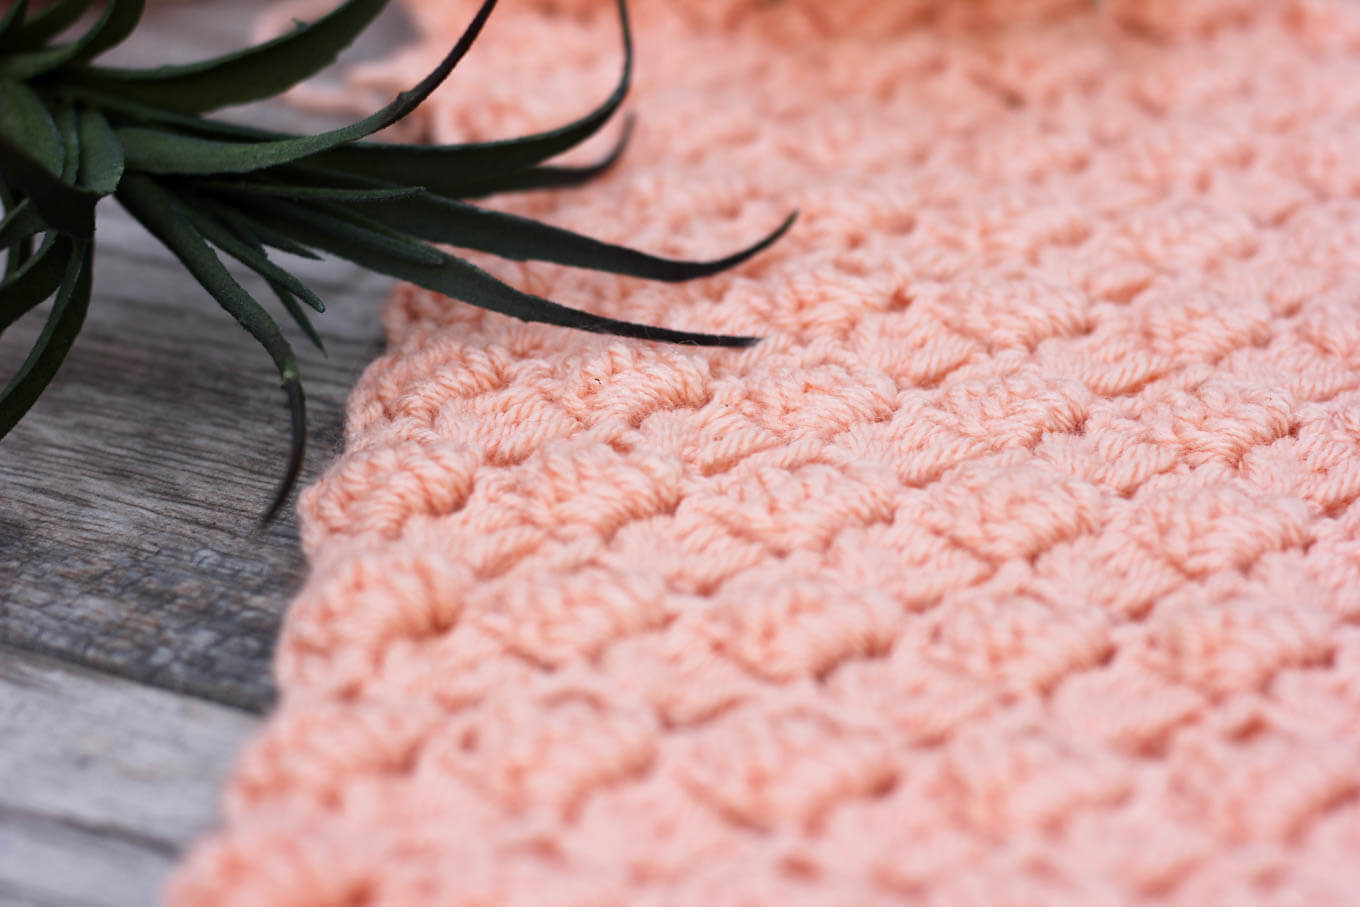 Crochet Stitches Step By Step : ... . Check out this video tutorial to learn how to do it step-by-step